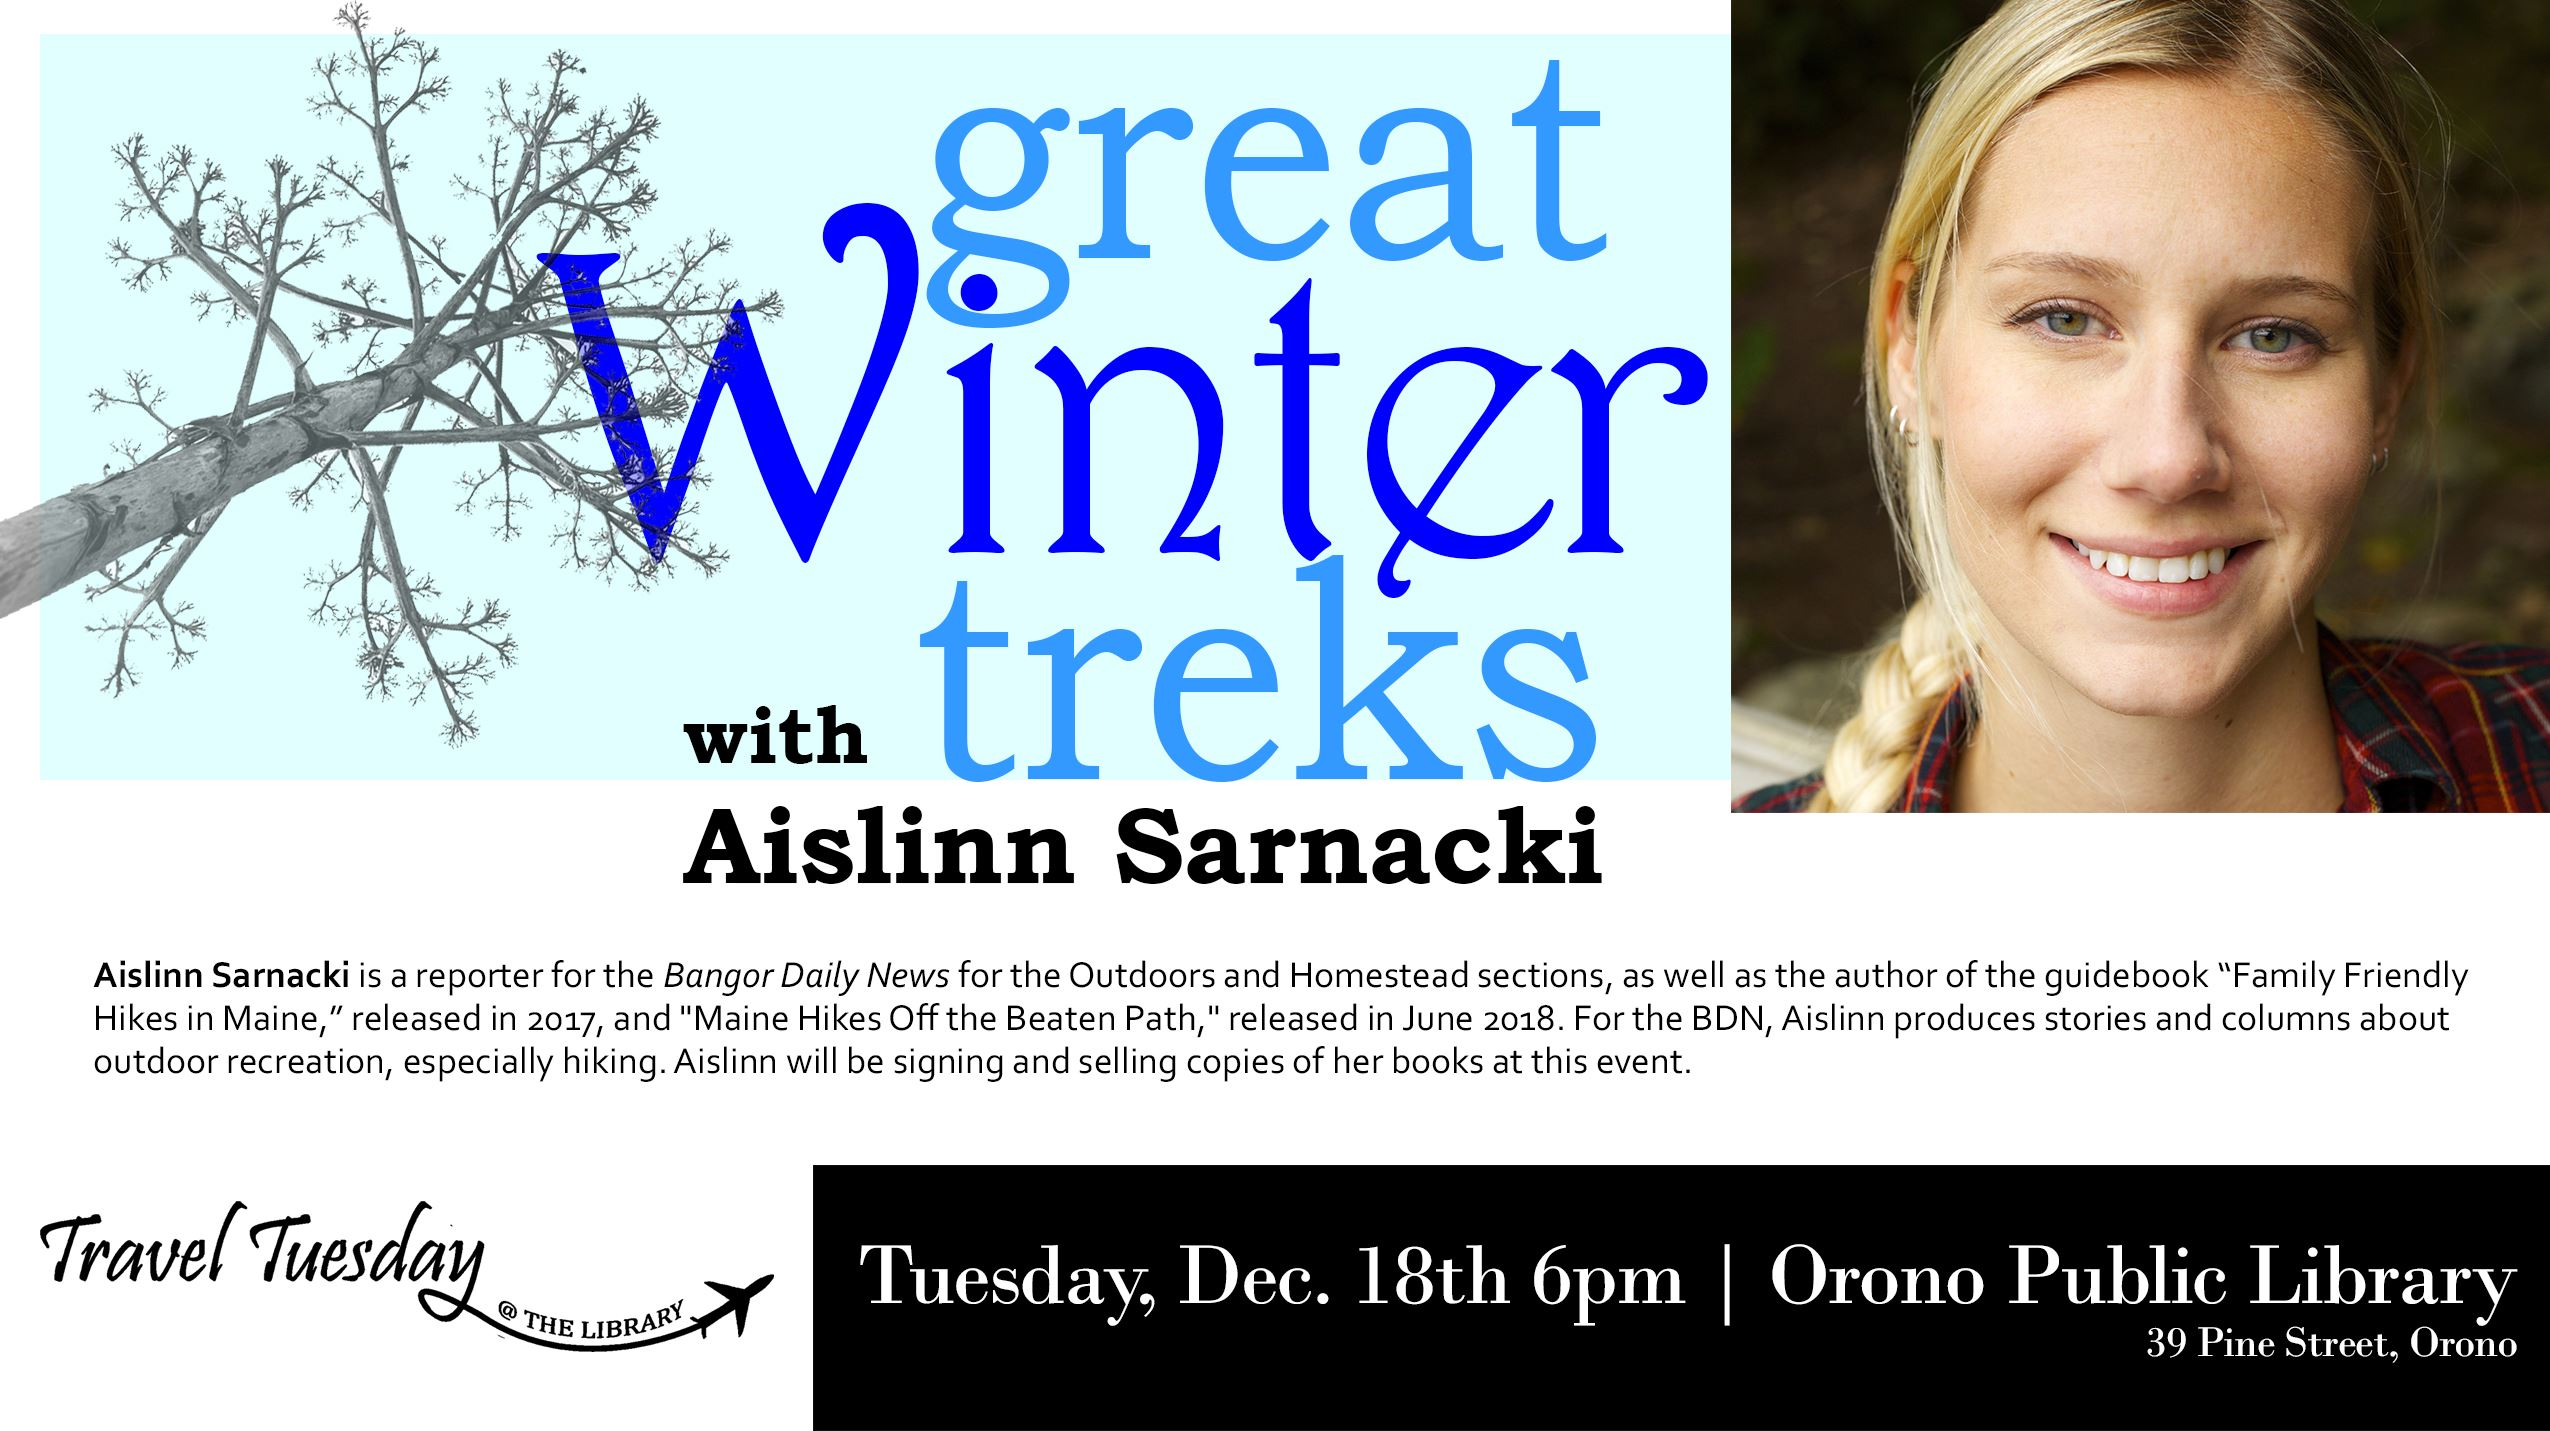 Great Winter Treks with Aislinn Sarnacki Tuesday, Dec. 18th 6pm Orono Public Library 39 Pine Street,